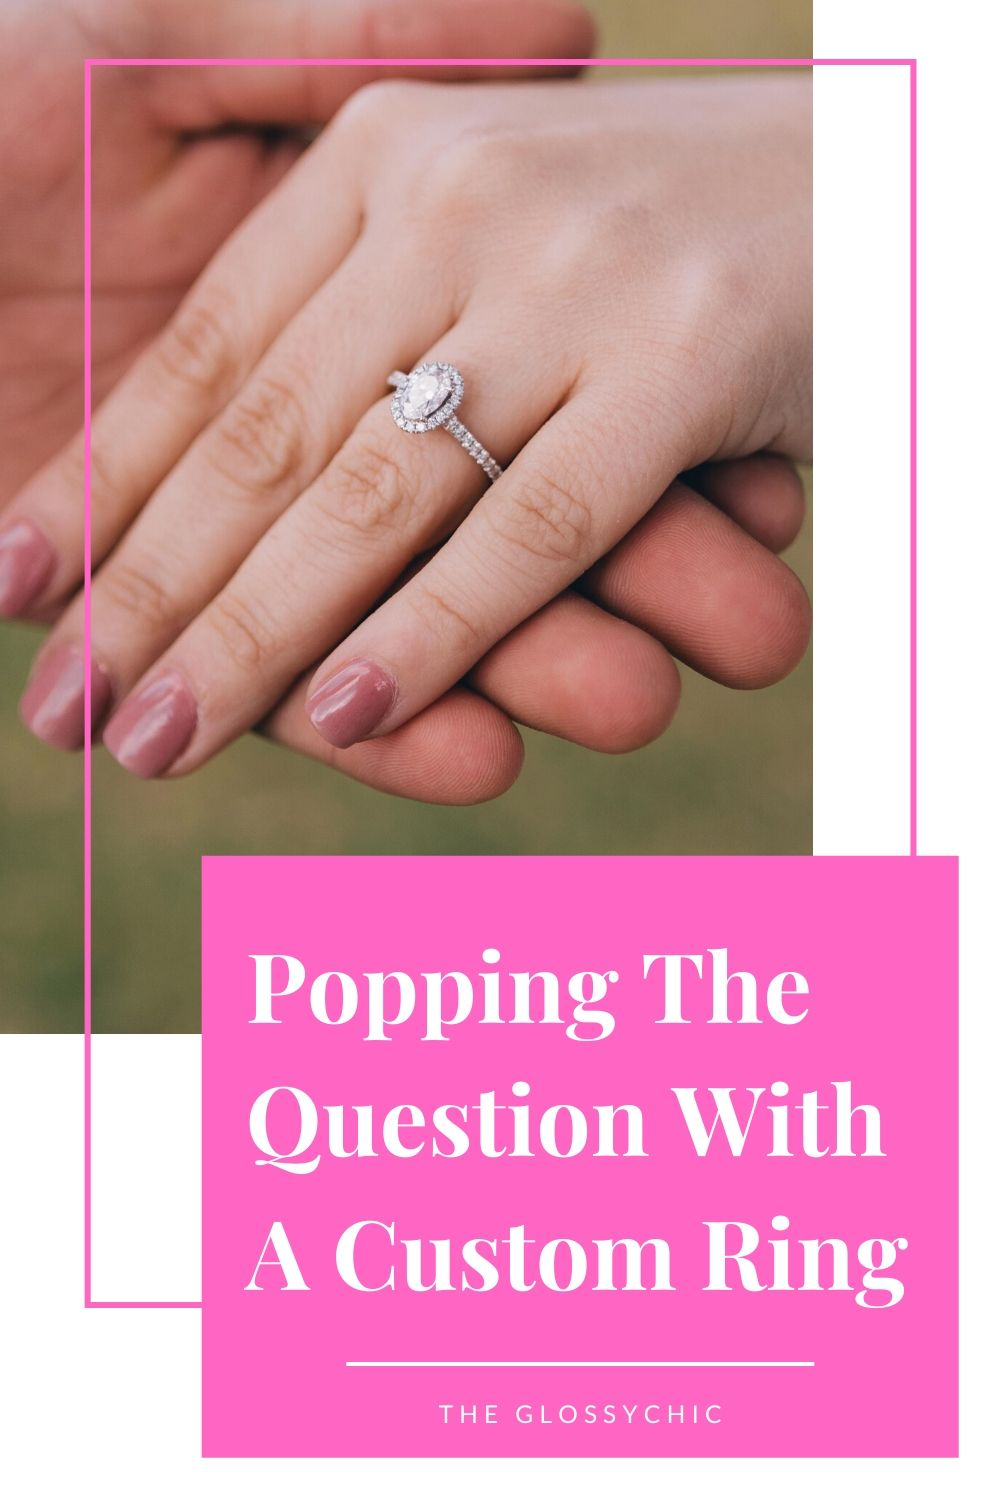 How to pop the question with a custom engagement ring